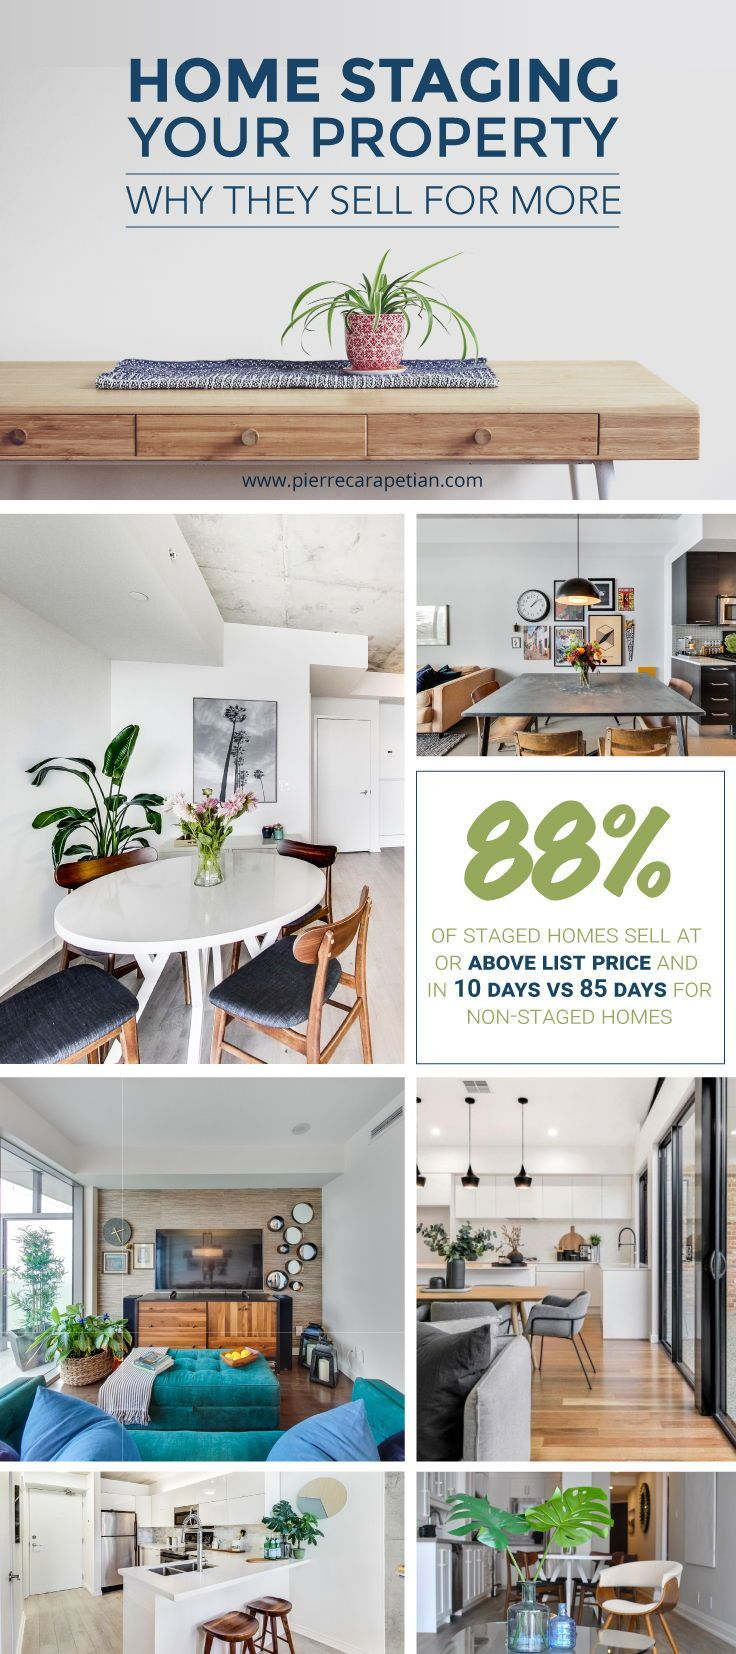 Home Staging Toronto Properties Why They Sell For More